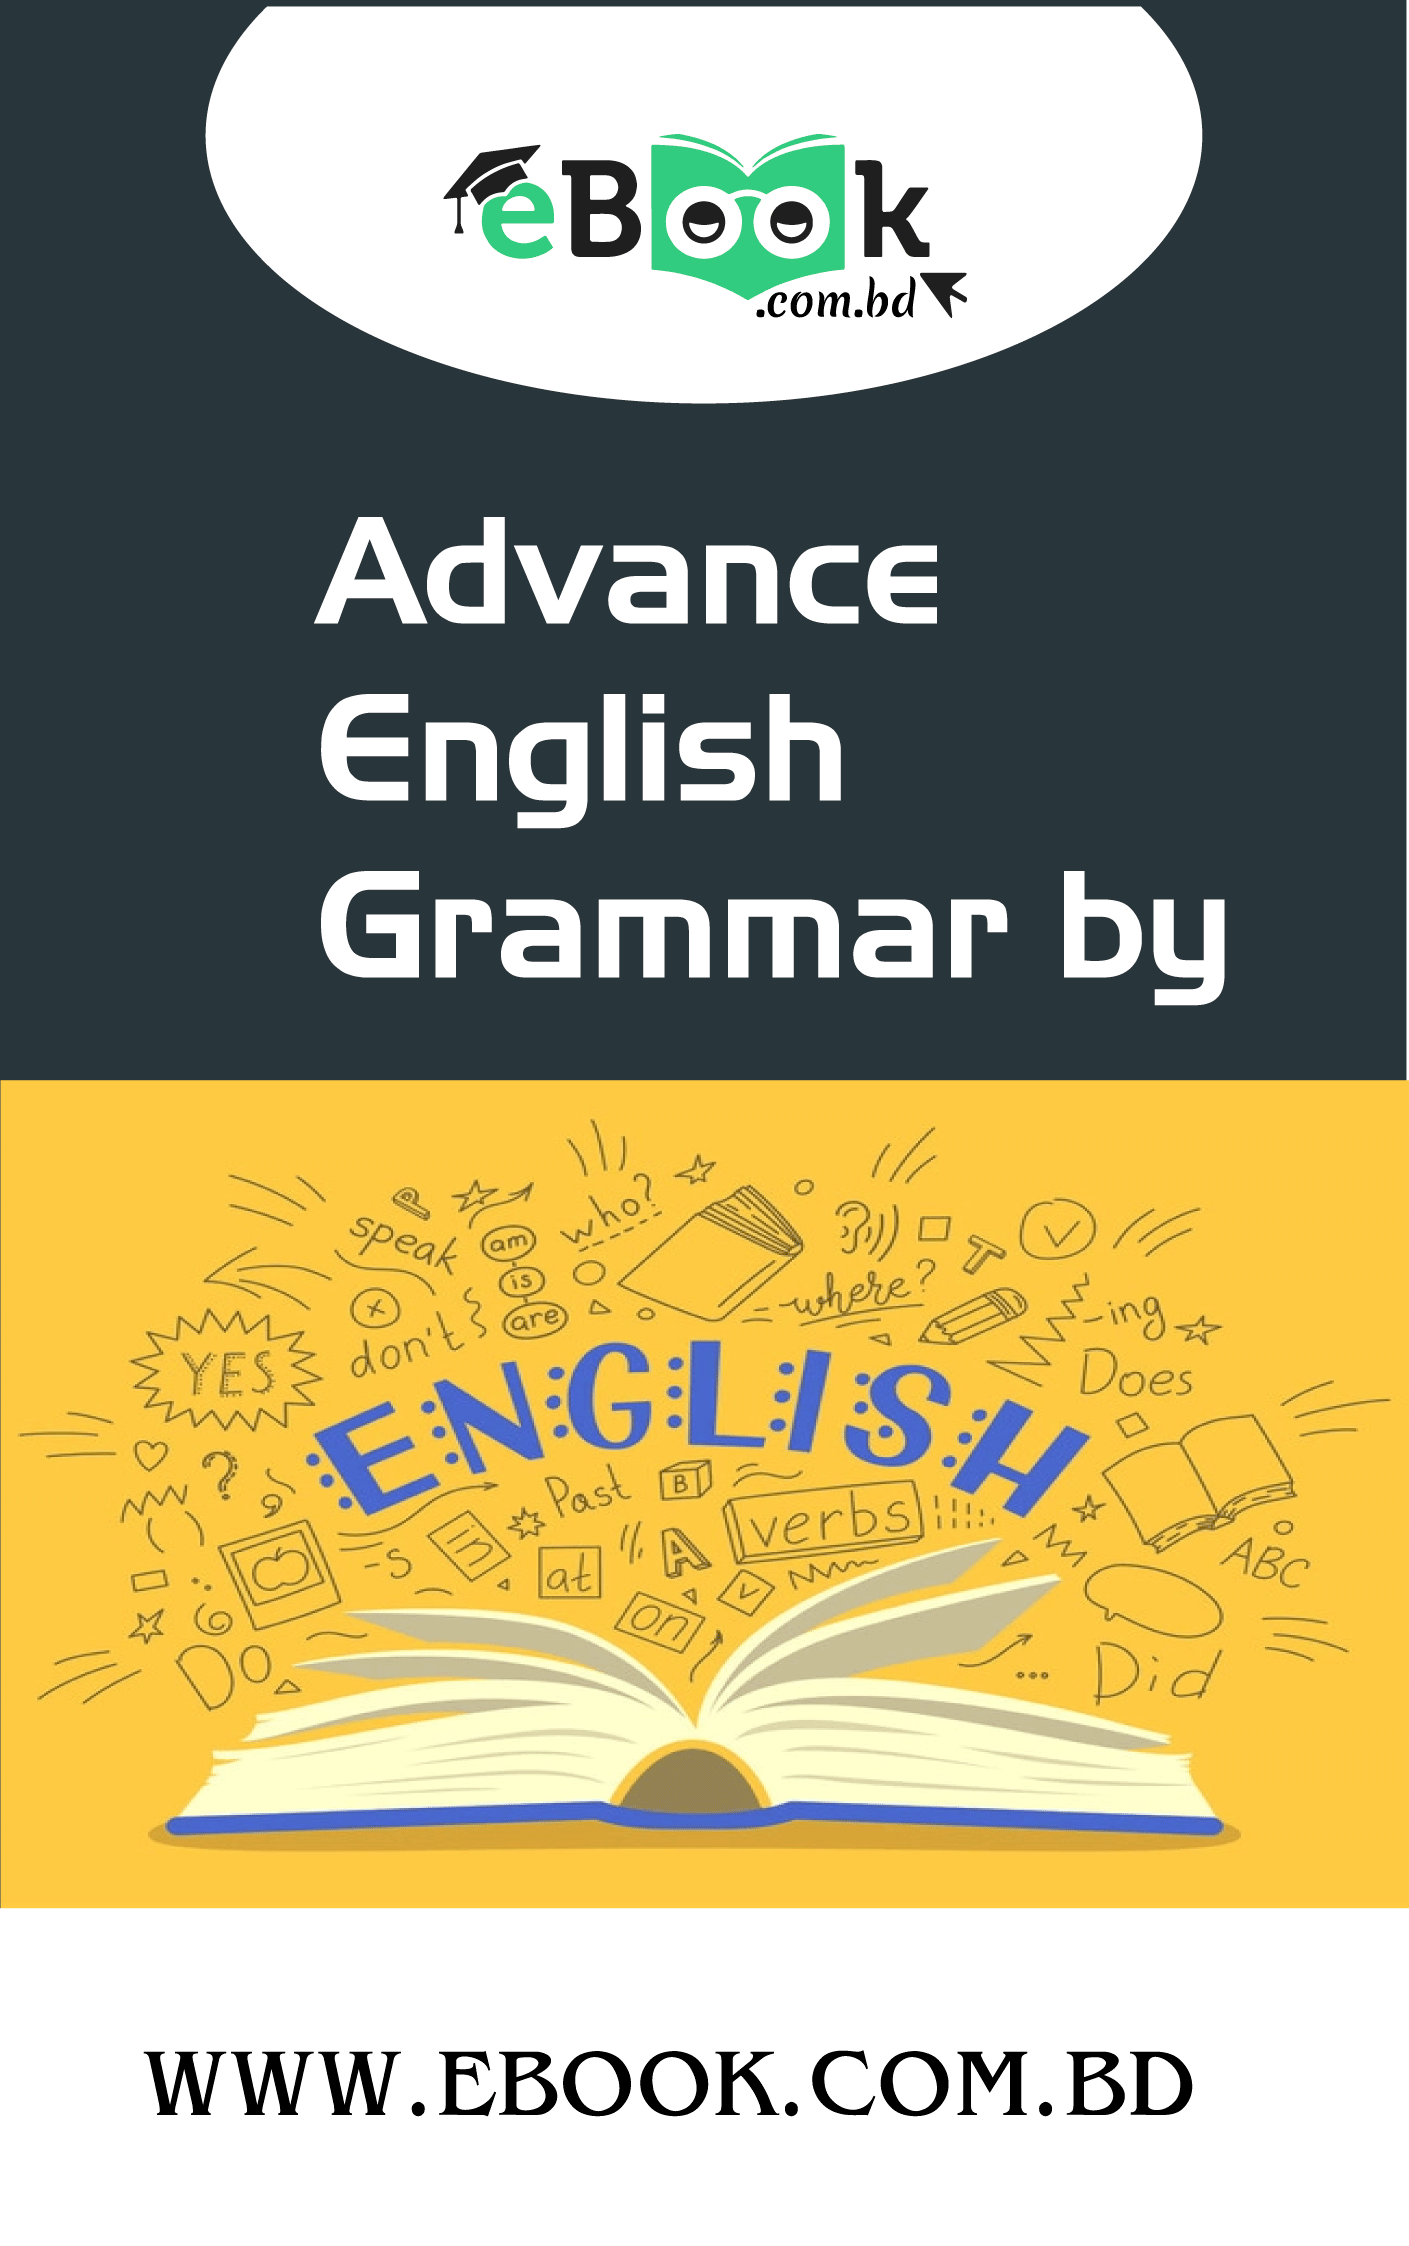 Thumbnail of Advance English Grammar by